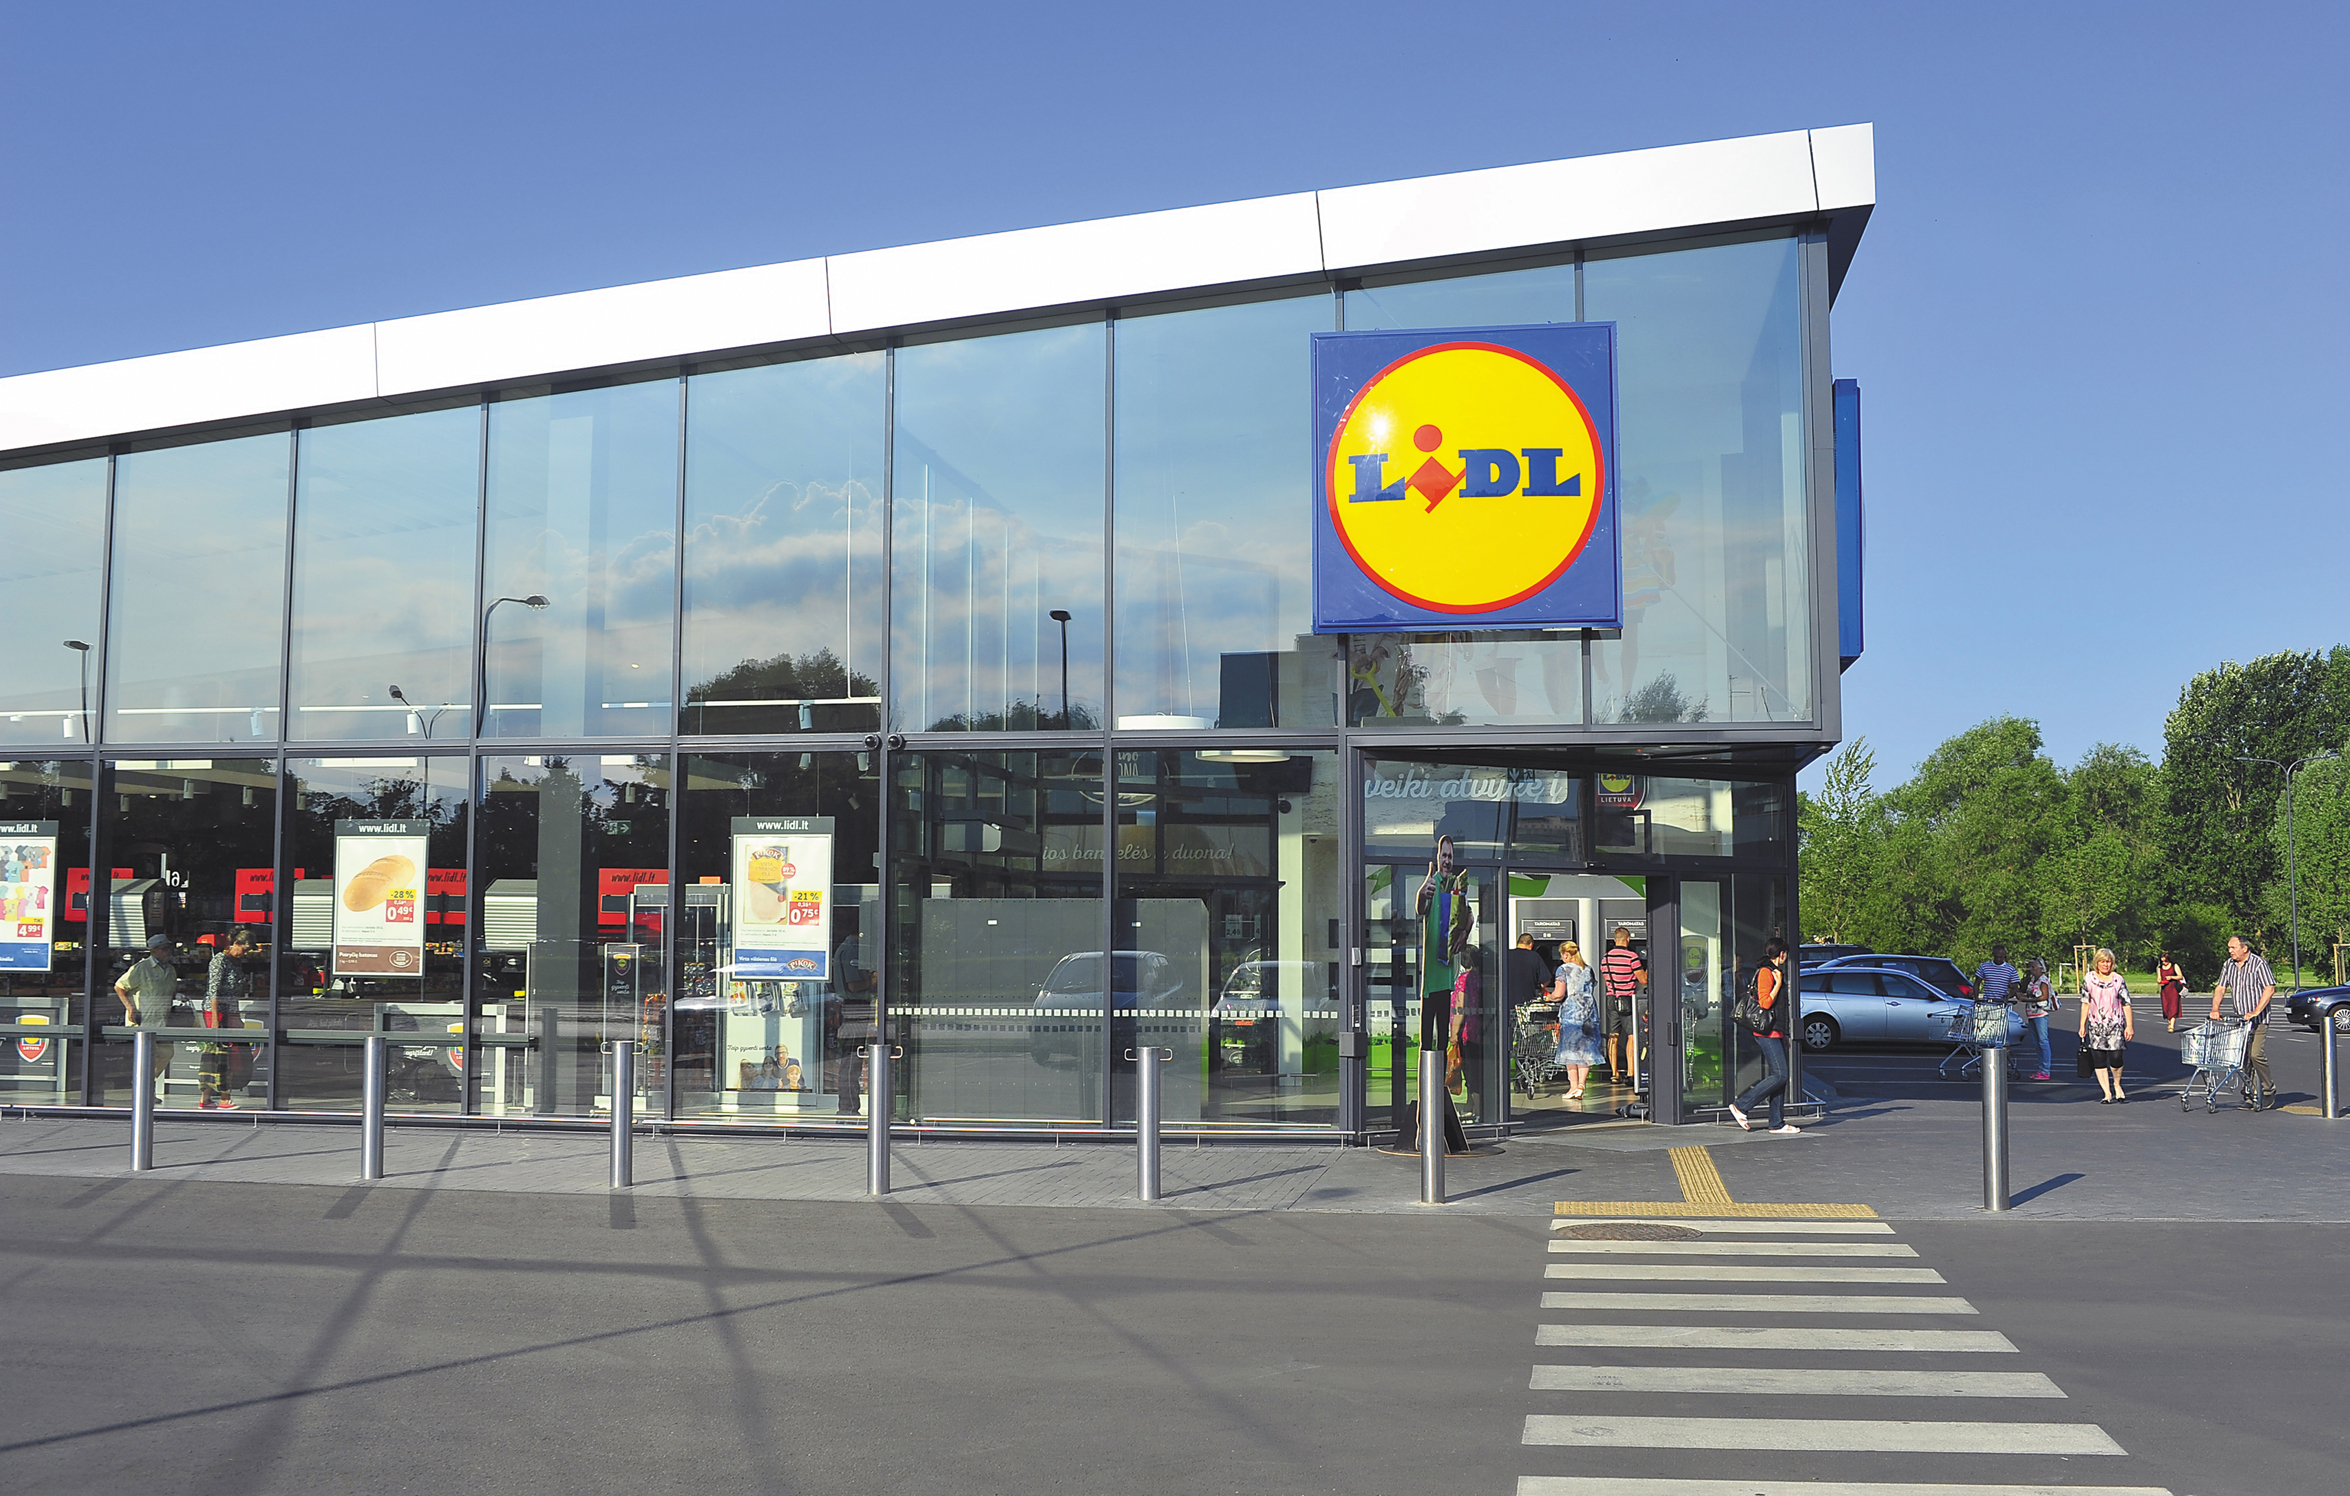 A Guide to UK Supermarket Chains - Lidl Discount Grocer